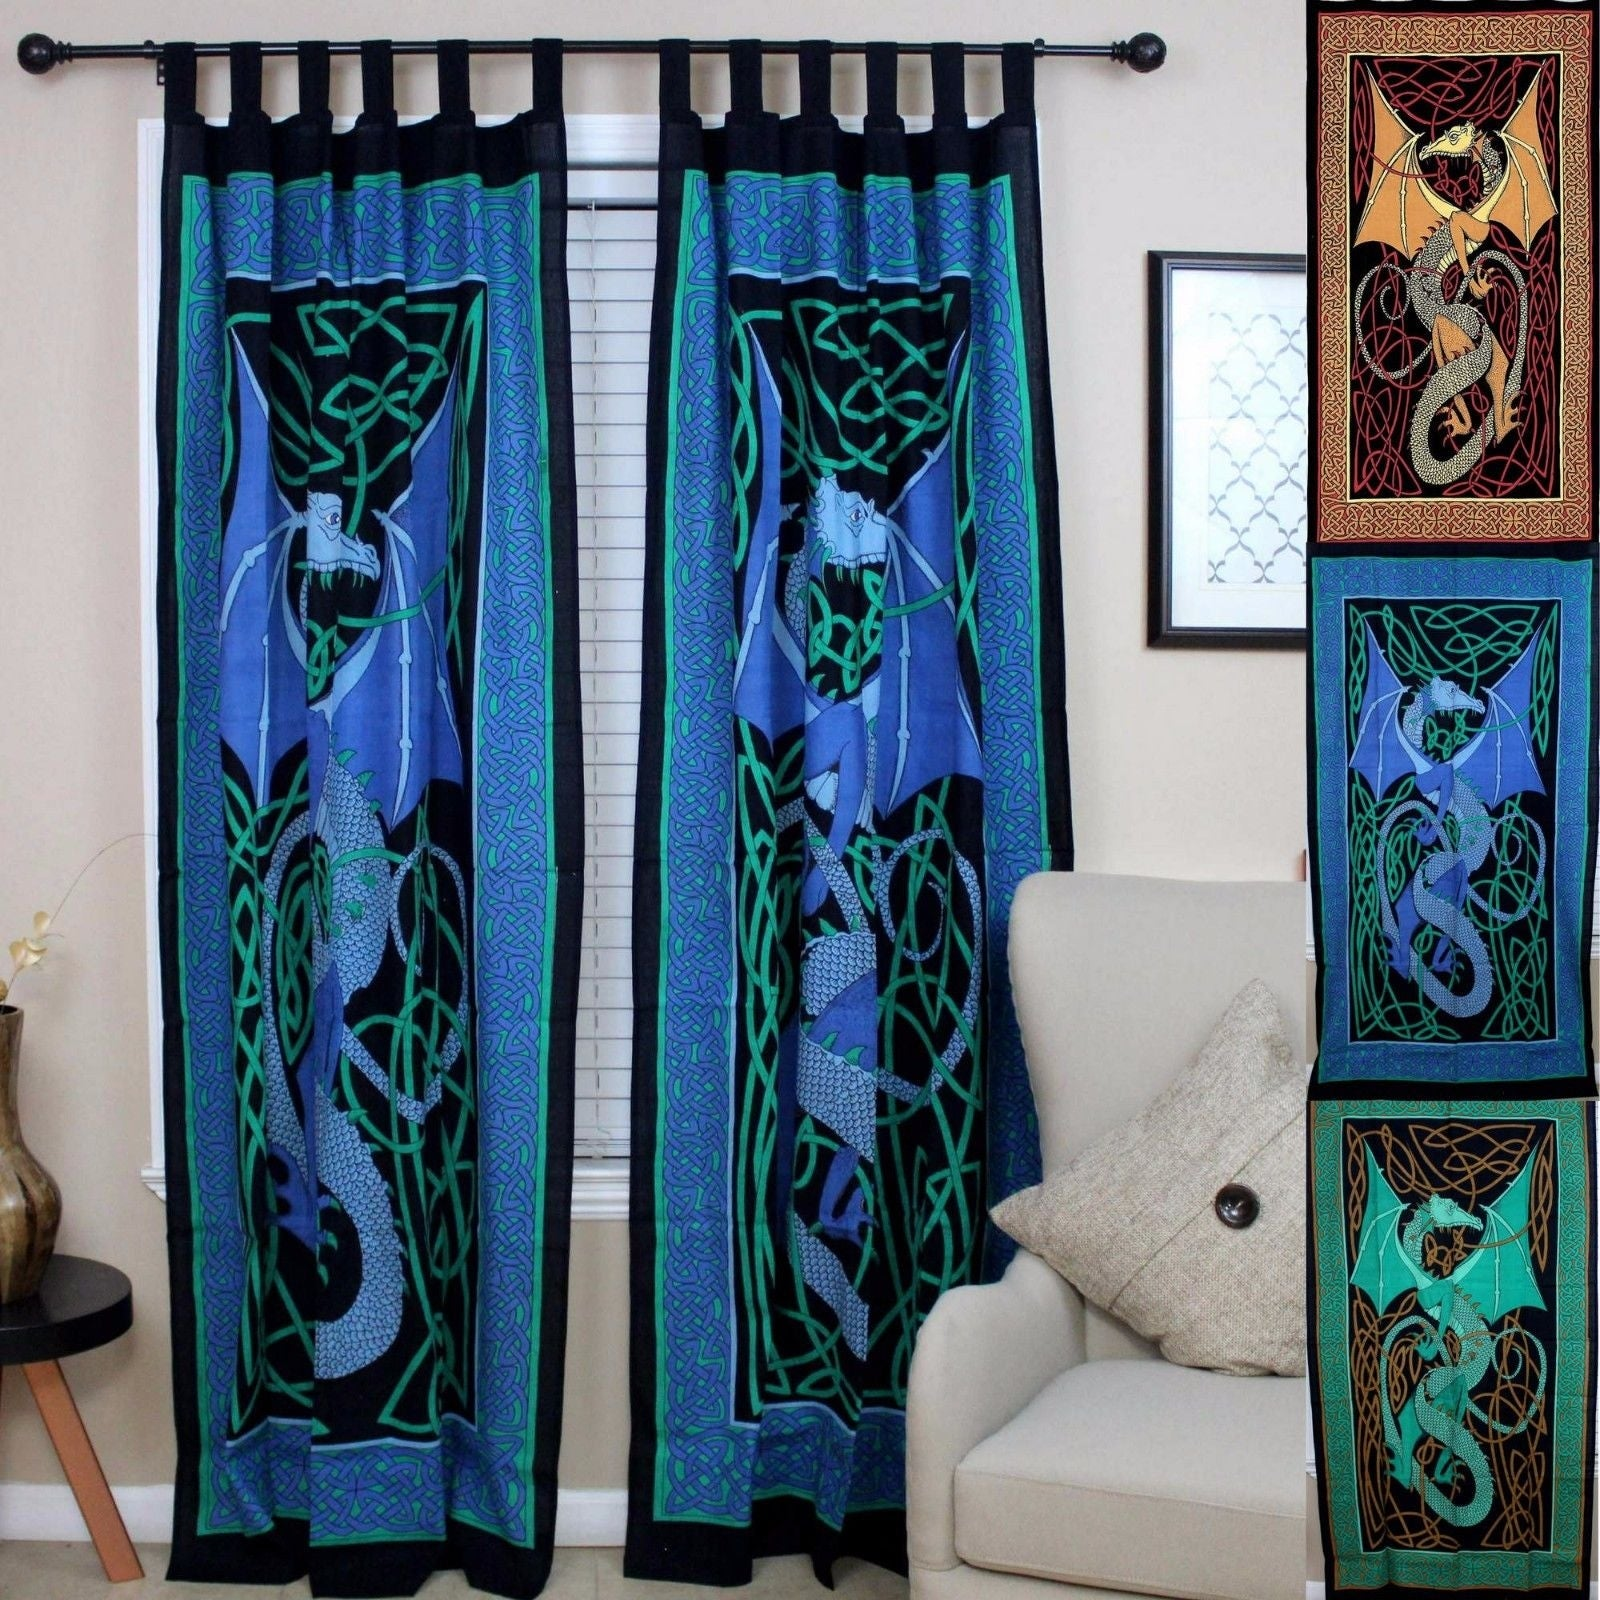 Handmade Celtic Dragon Curtain 100% Cotton Drape Panel 44 x 88 inches in Green Red Brown Blue - 44 x 88 inches - Thumbnail 0